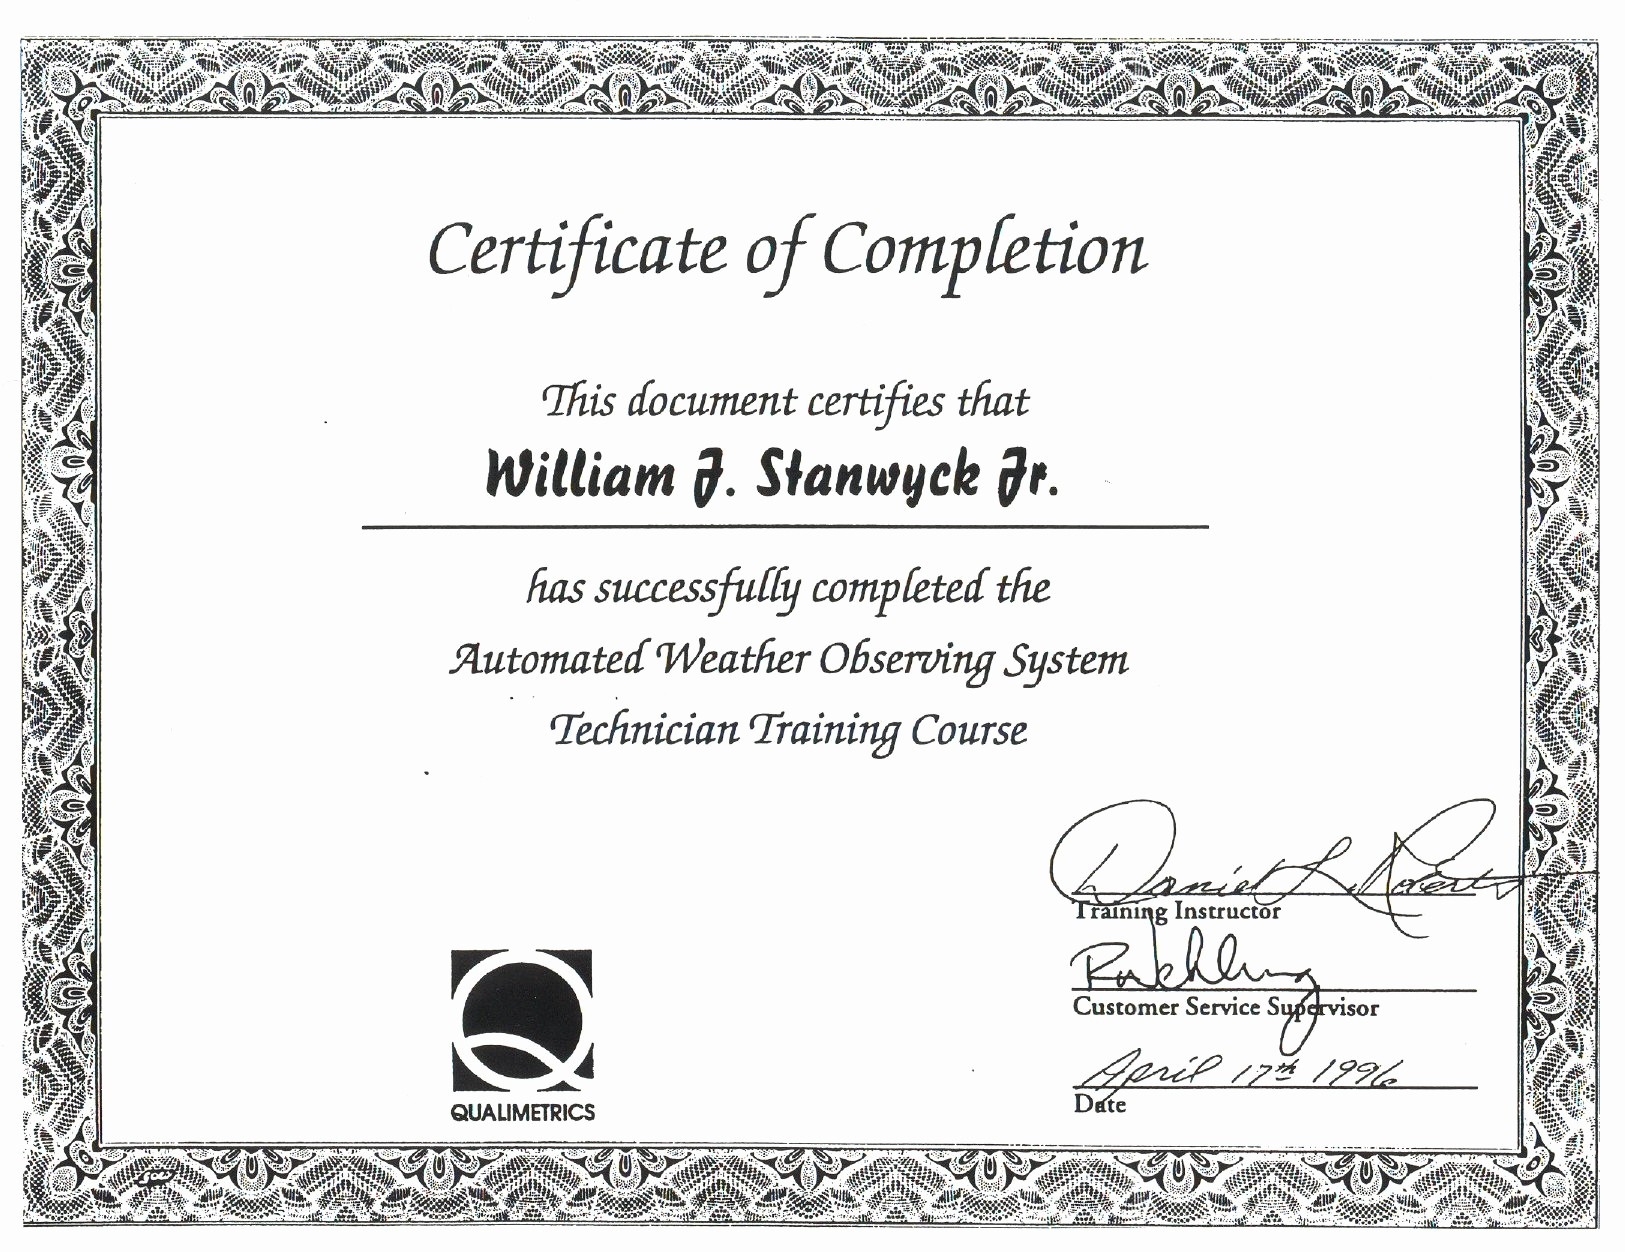 Certificate Of Completion Word Template Inspirational 13 Certificate Of Pletion Templates Excel Pdf formats